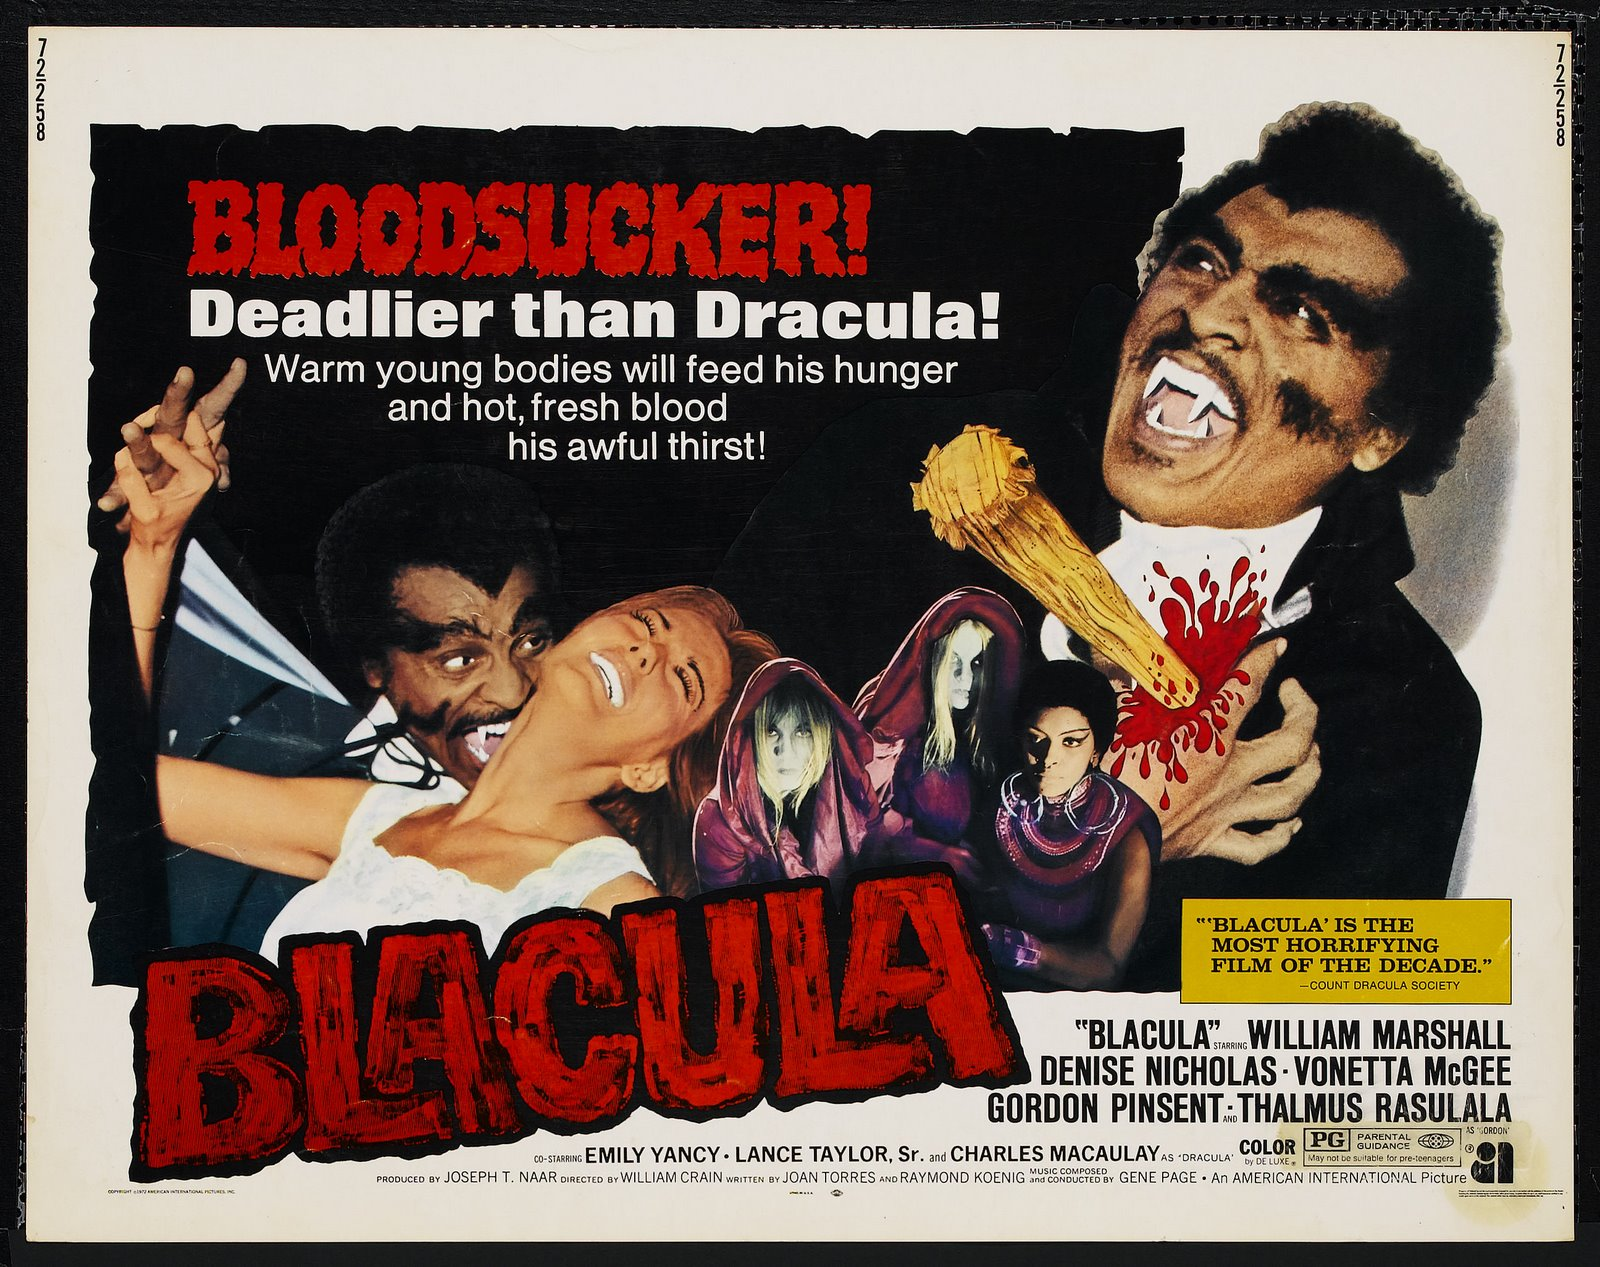 October 28th: Blacula (1972)